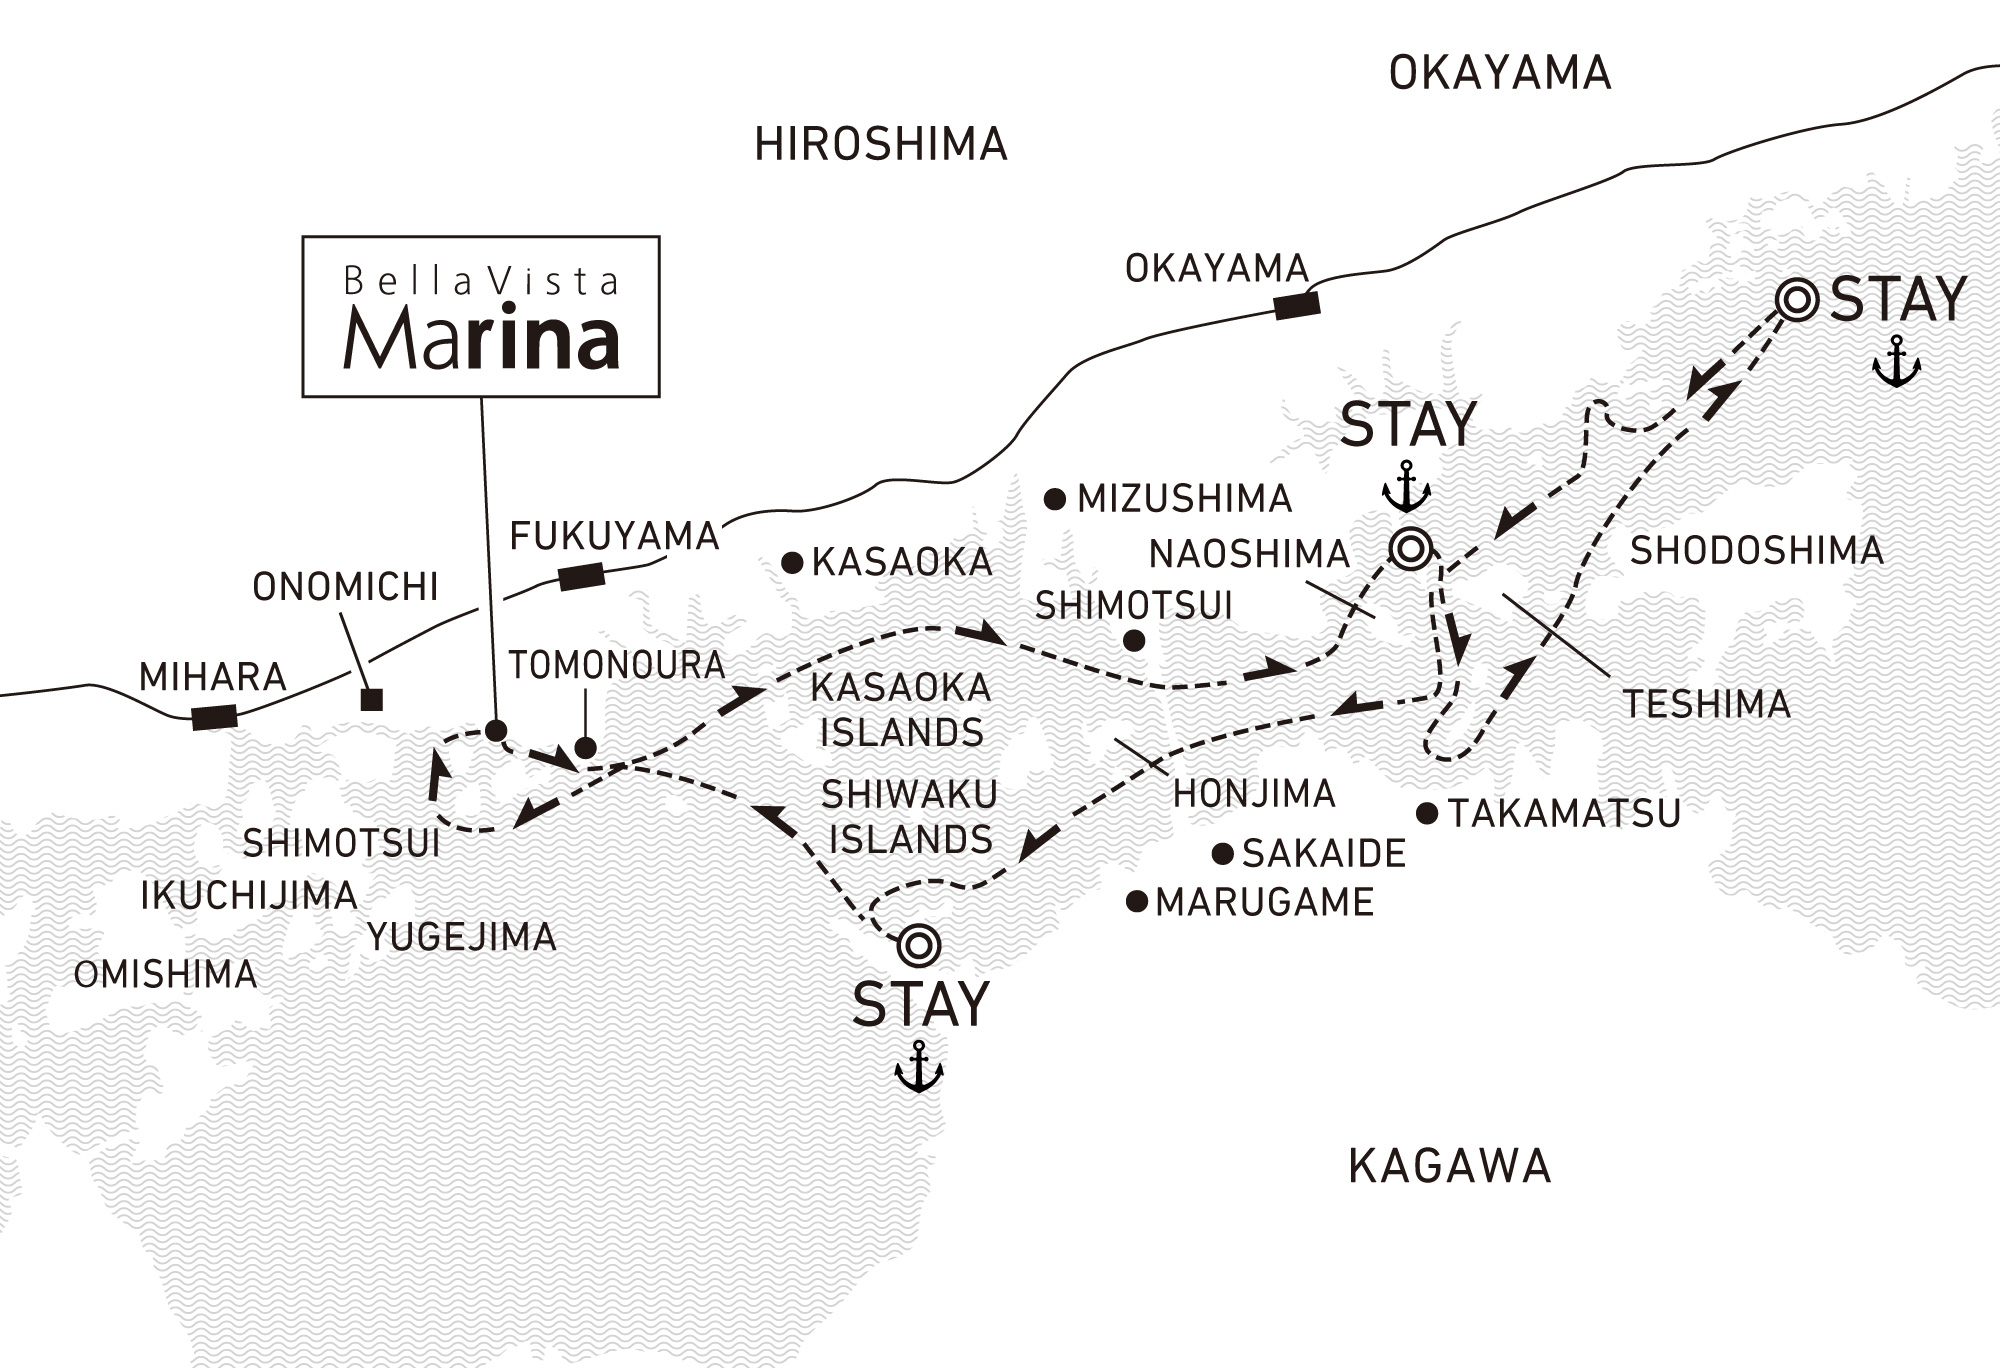 A four-day voyage to experience traditional Setouchi culture and craftsmanship 3 nights / anchor offshore at Tamano, Hinase and Tomonoura (For 2022)